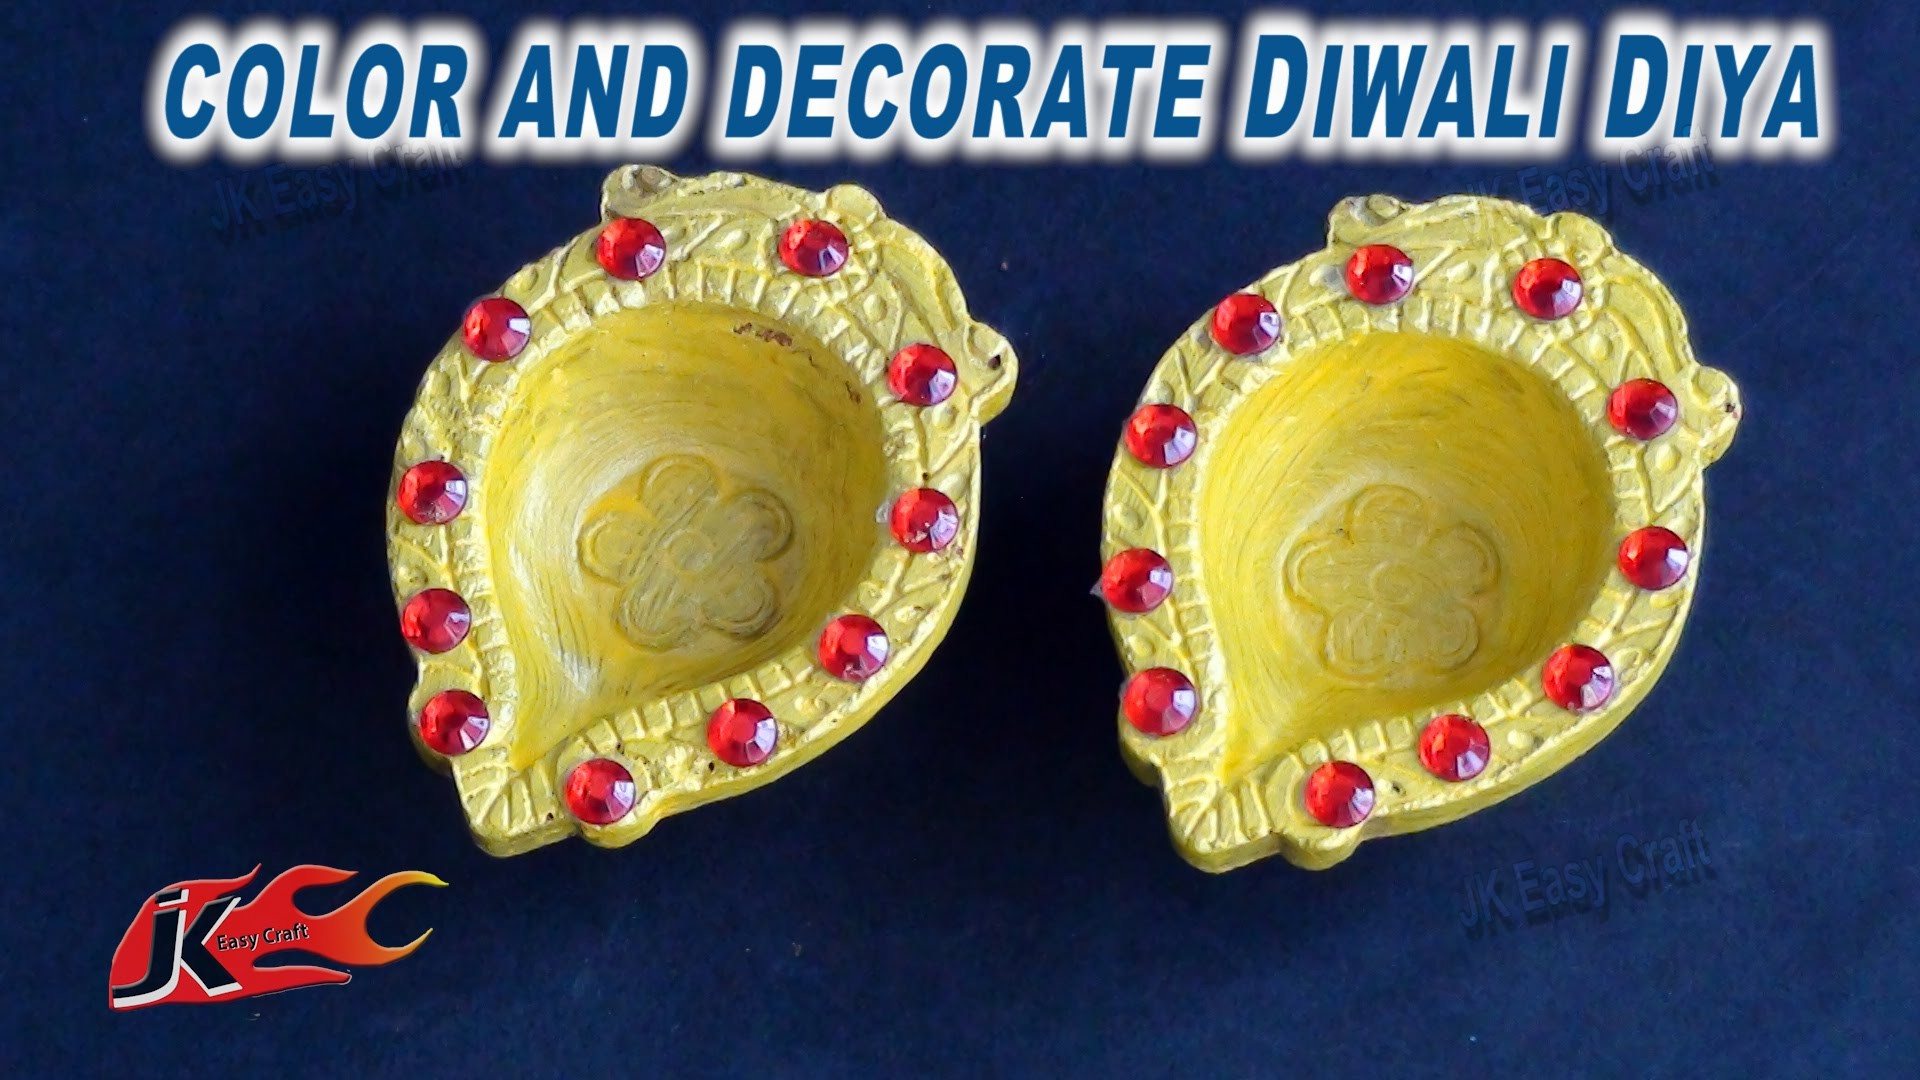 DIY Diwali Diya Decoration|How to color and decorate |JK Easy Craft 055